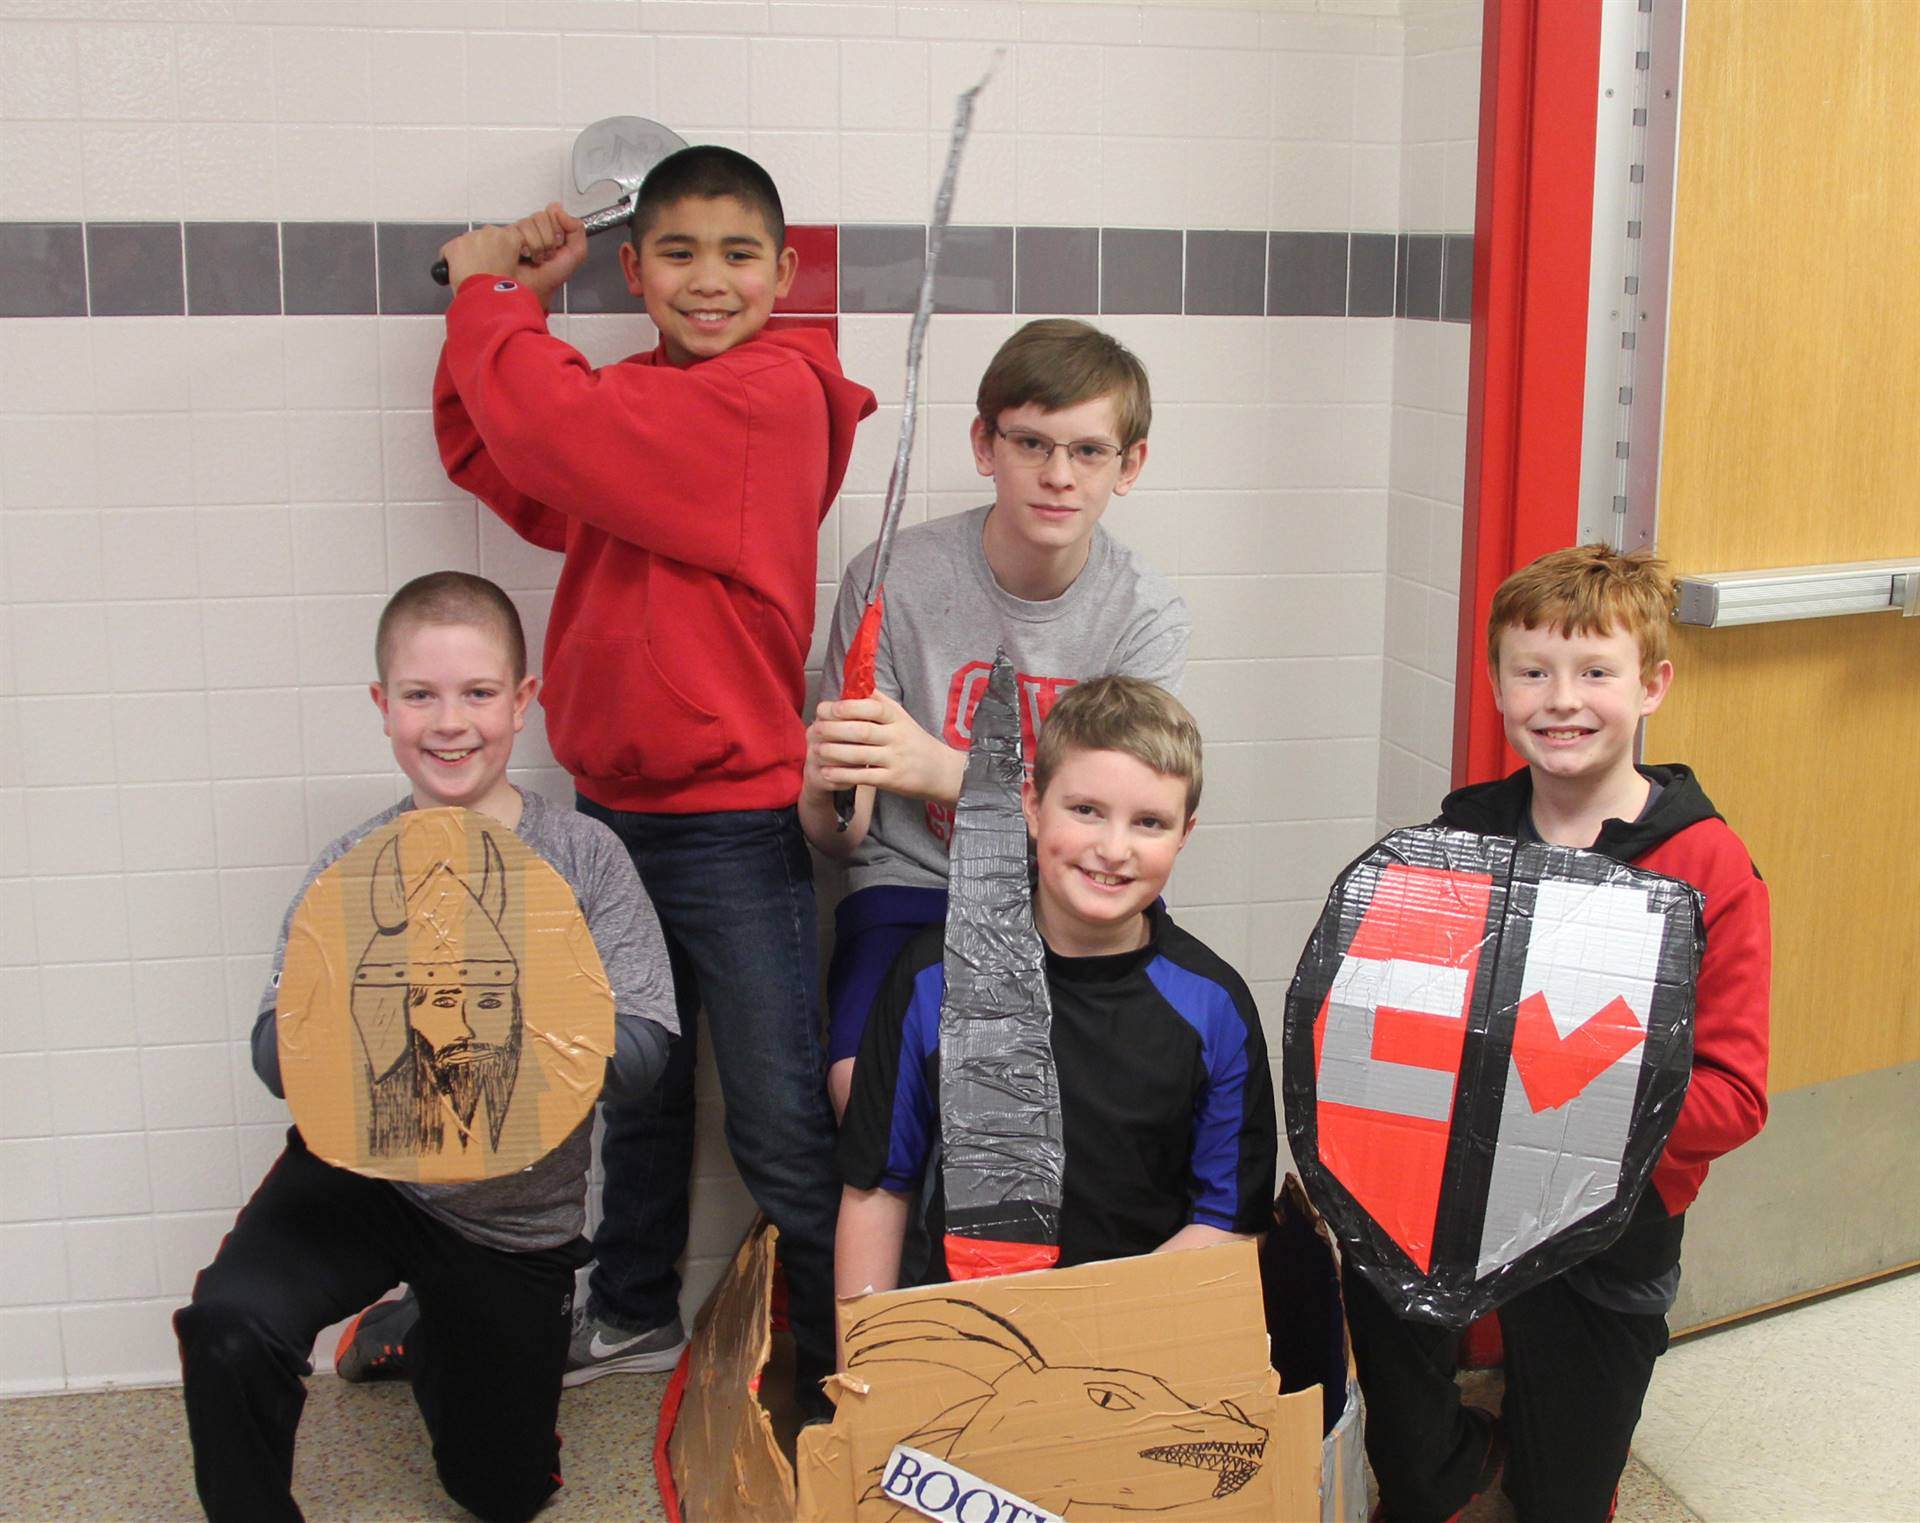 five students with cardboard boat